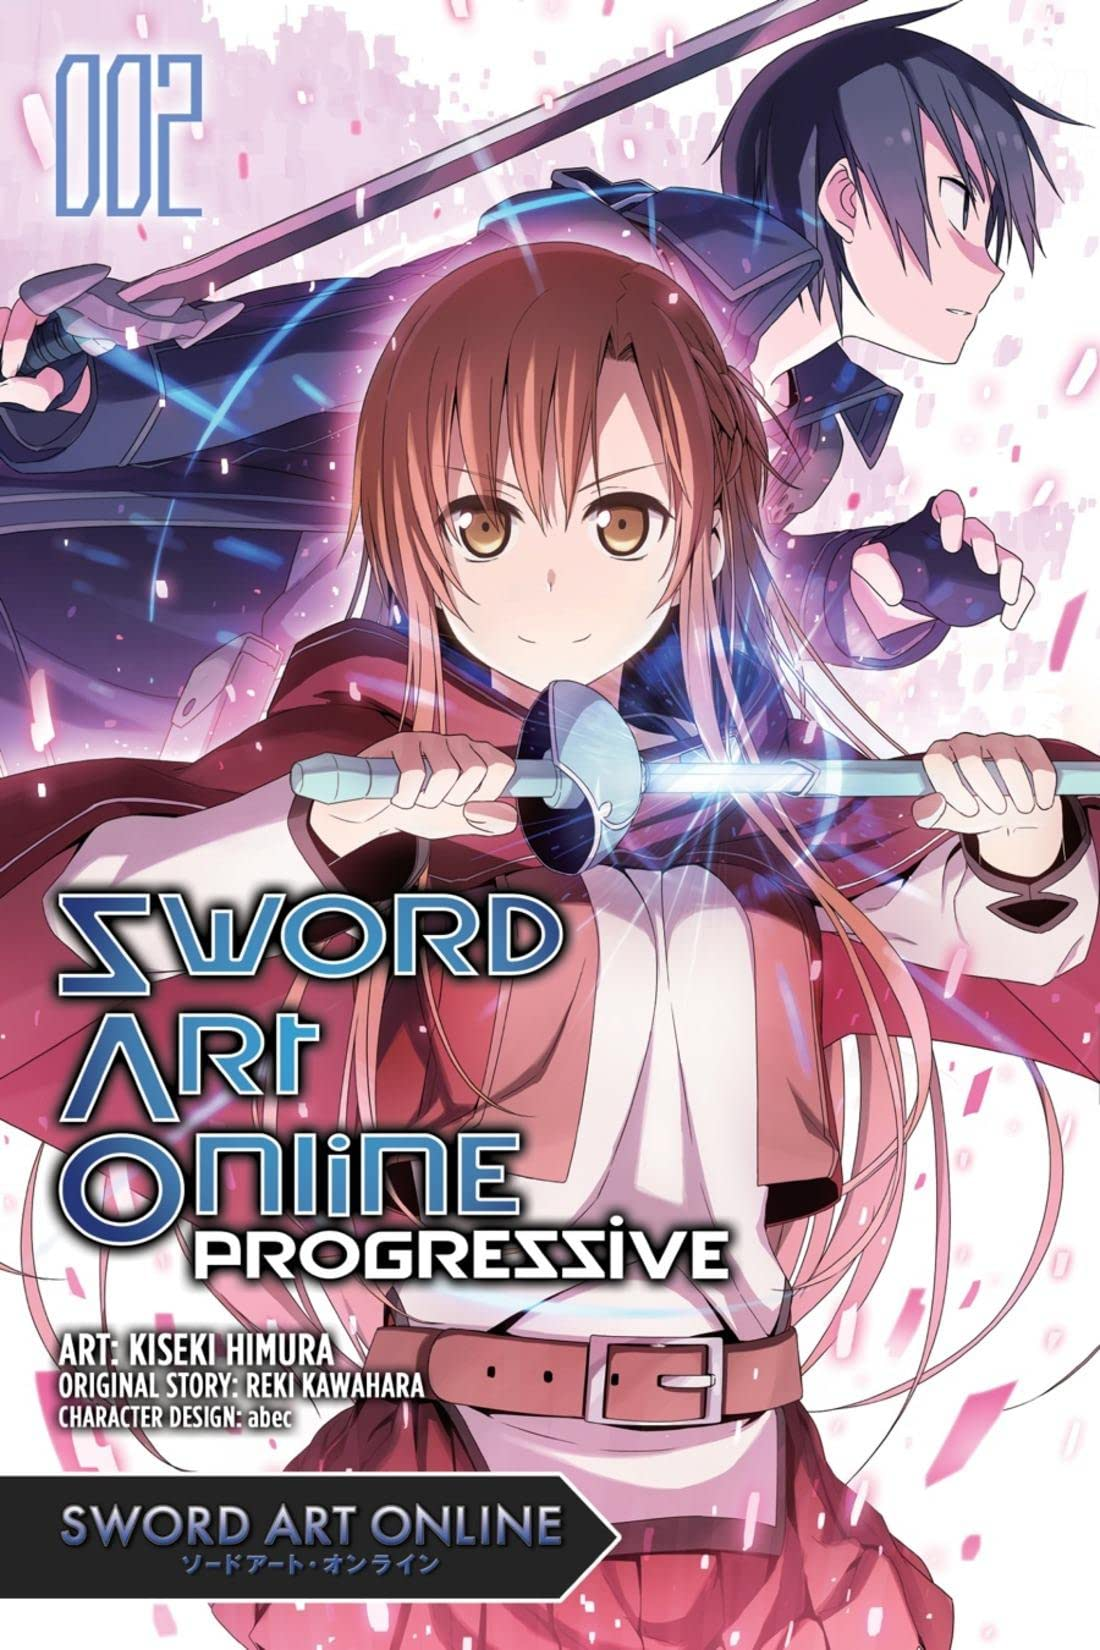 Sword Art Online Progressive Vol. 2